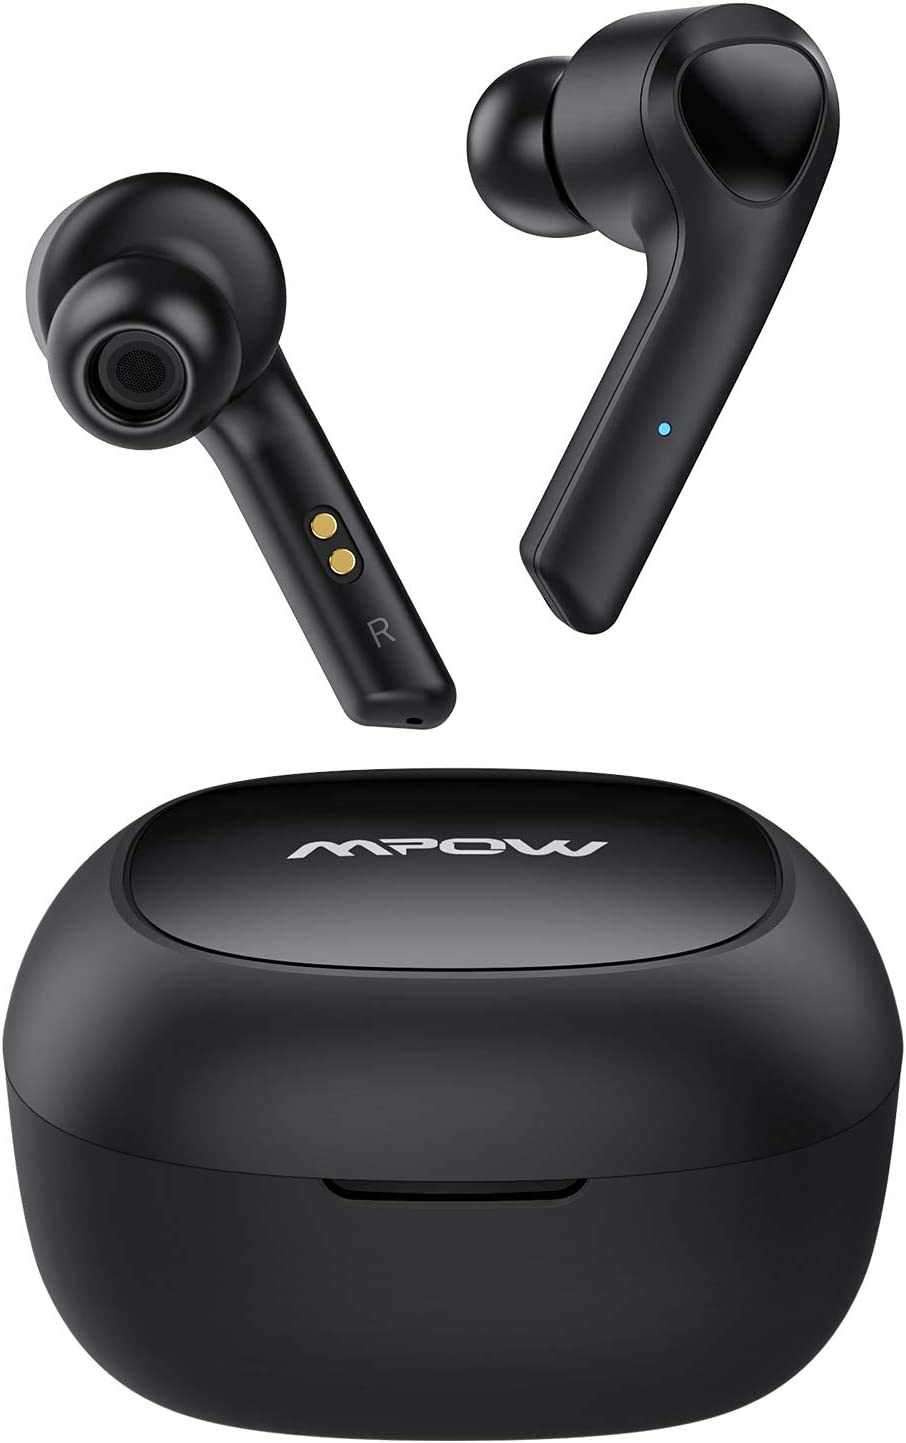 True Wireless Earbuds, Mpow MS1 in-Ear Bluetooth Earphones, Immersive Sound w/Bass, IPX7 Sweatproof, Touch Control, 25 Hrs w/Charging Case/Mics, TWS Headphones for All Bluetooth Devices